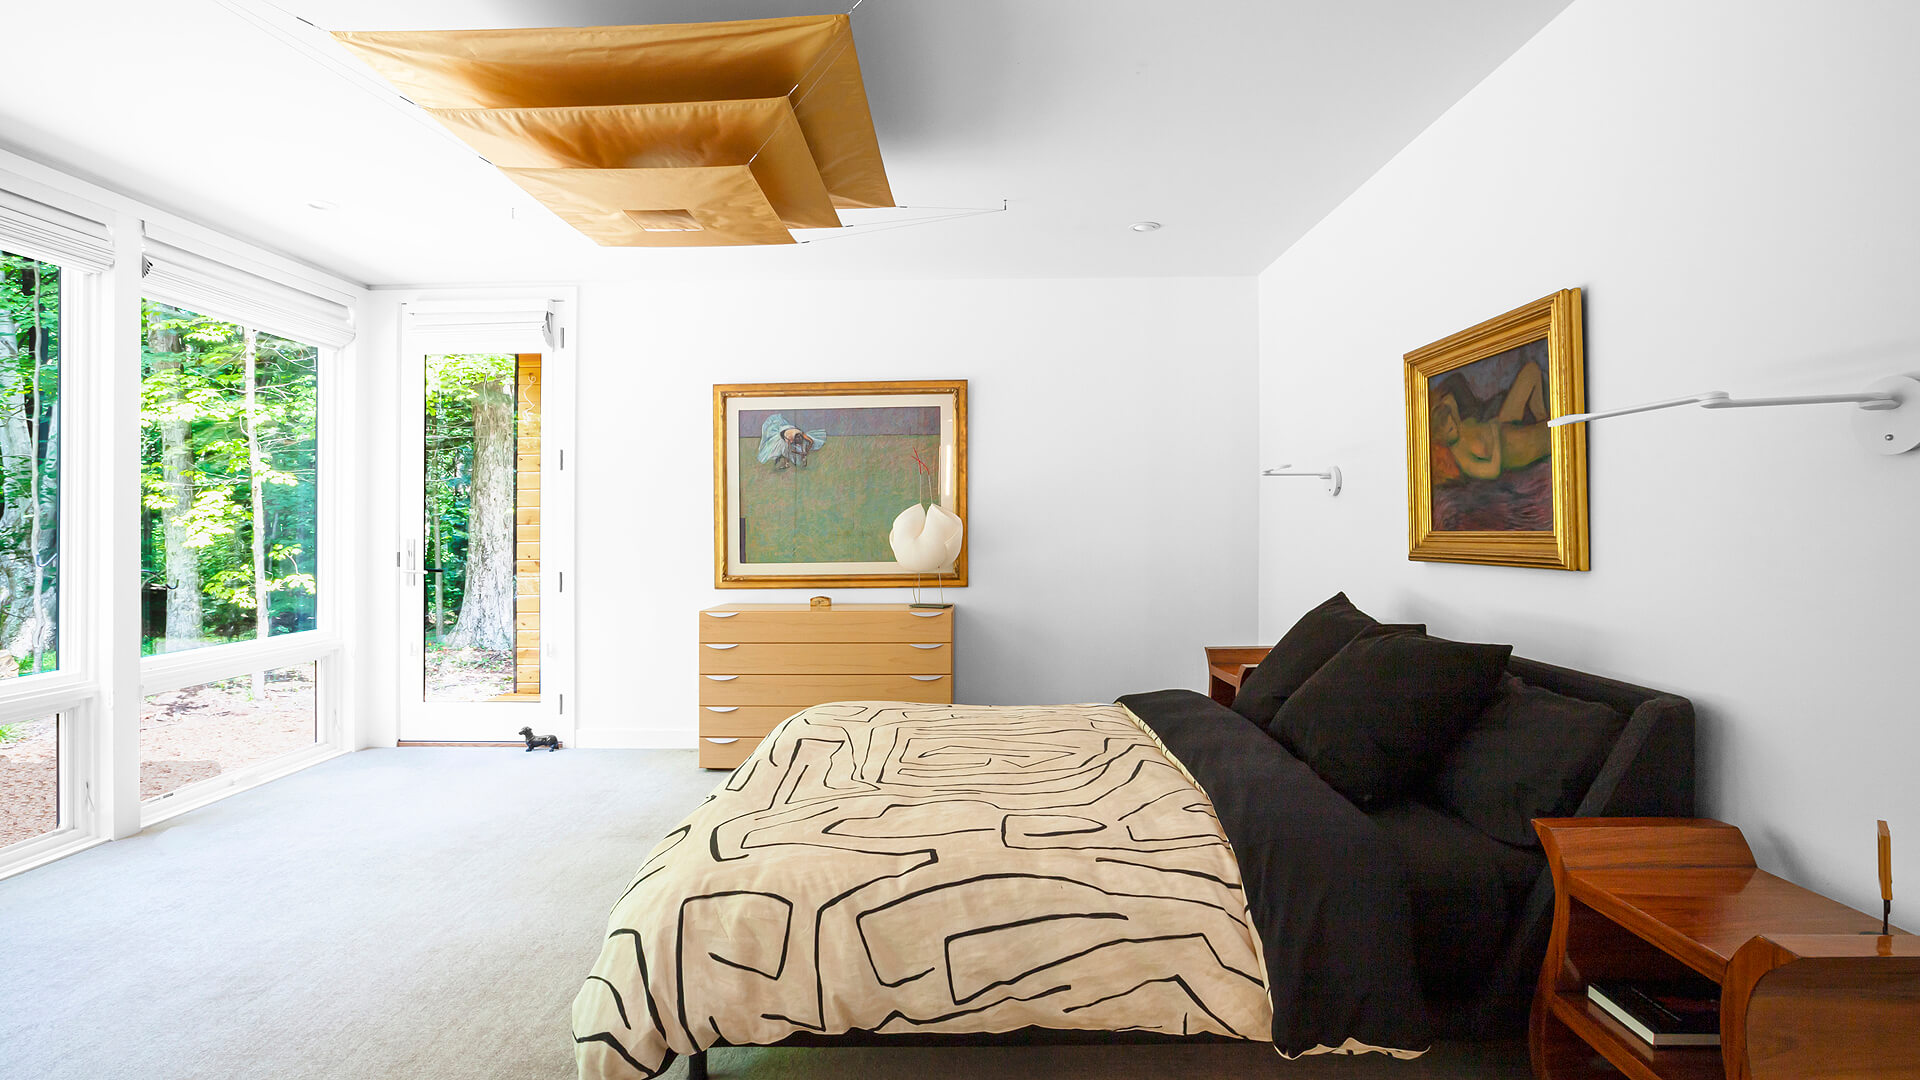 View into Master Bedroom features curated artwork, furniture, and light fixtures - Ingo Maurer - Bridge House - Fenneville, Michigan - Lake Michigan